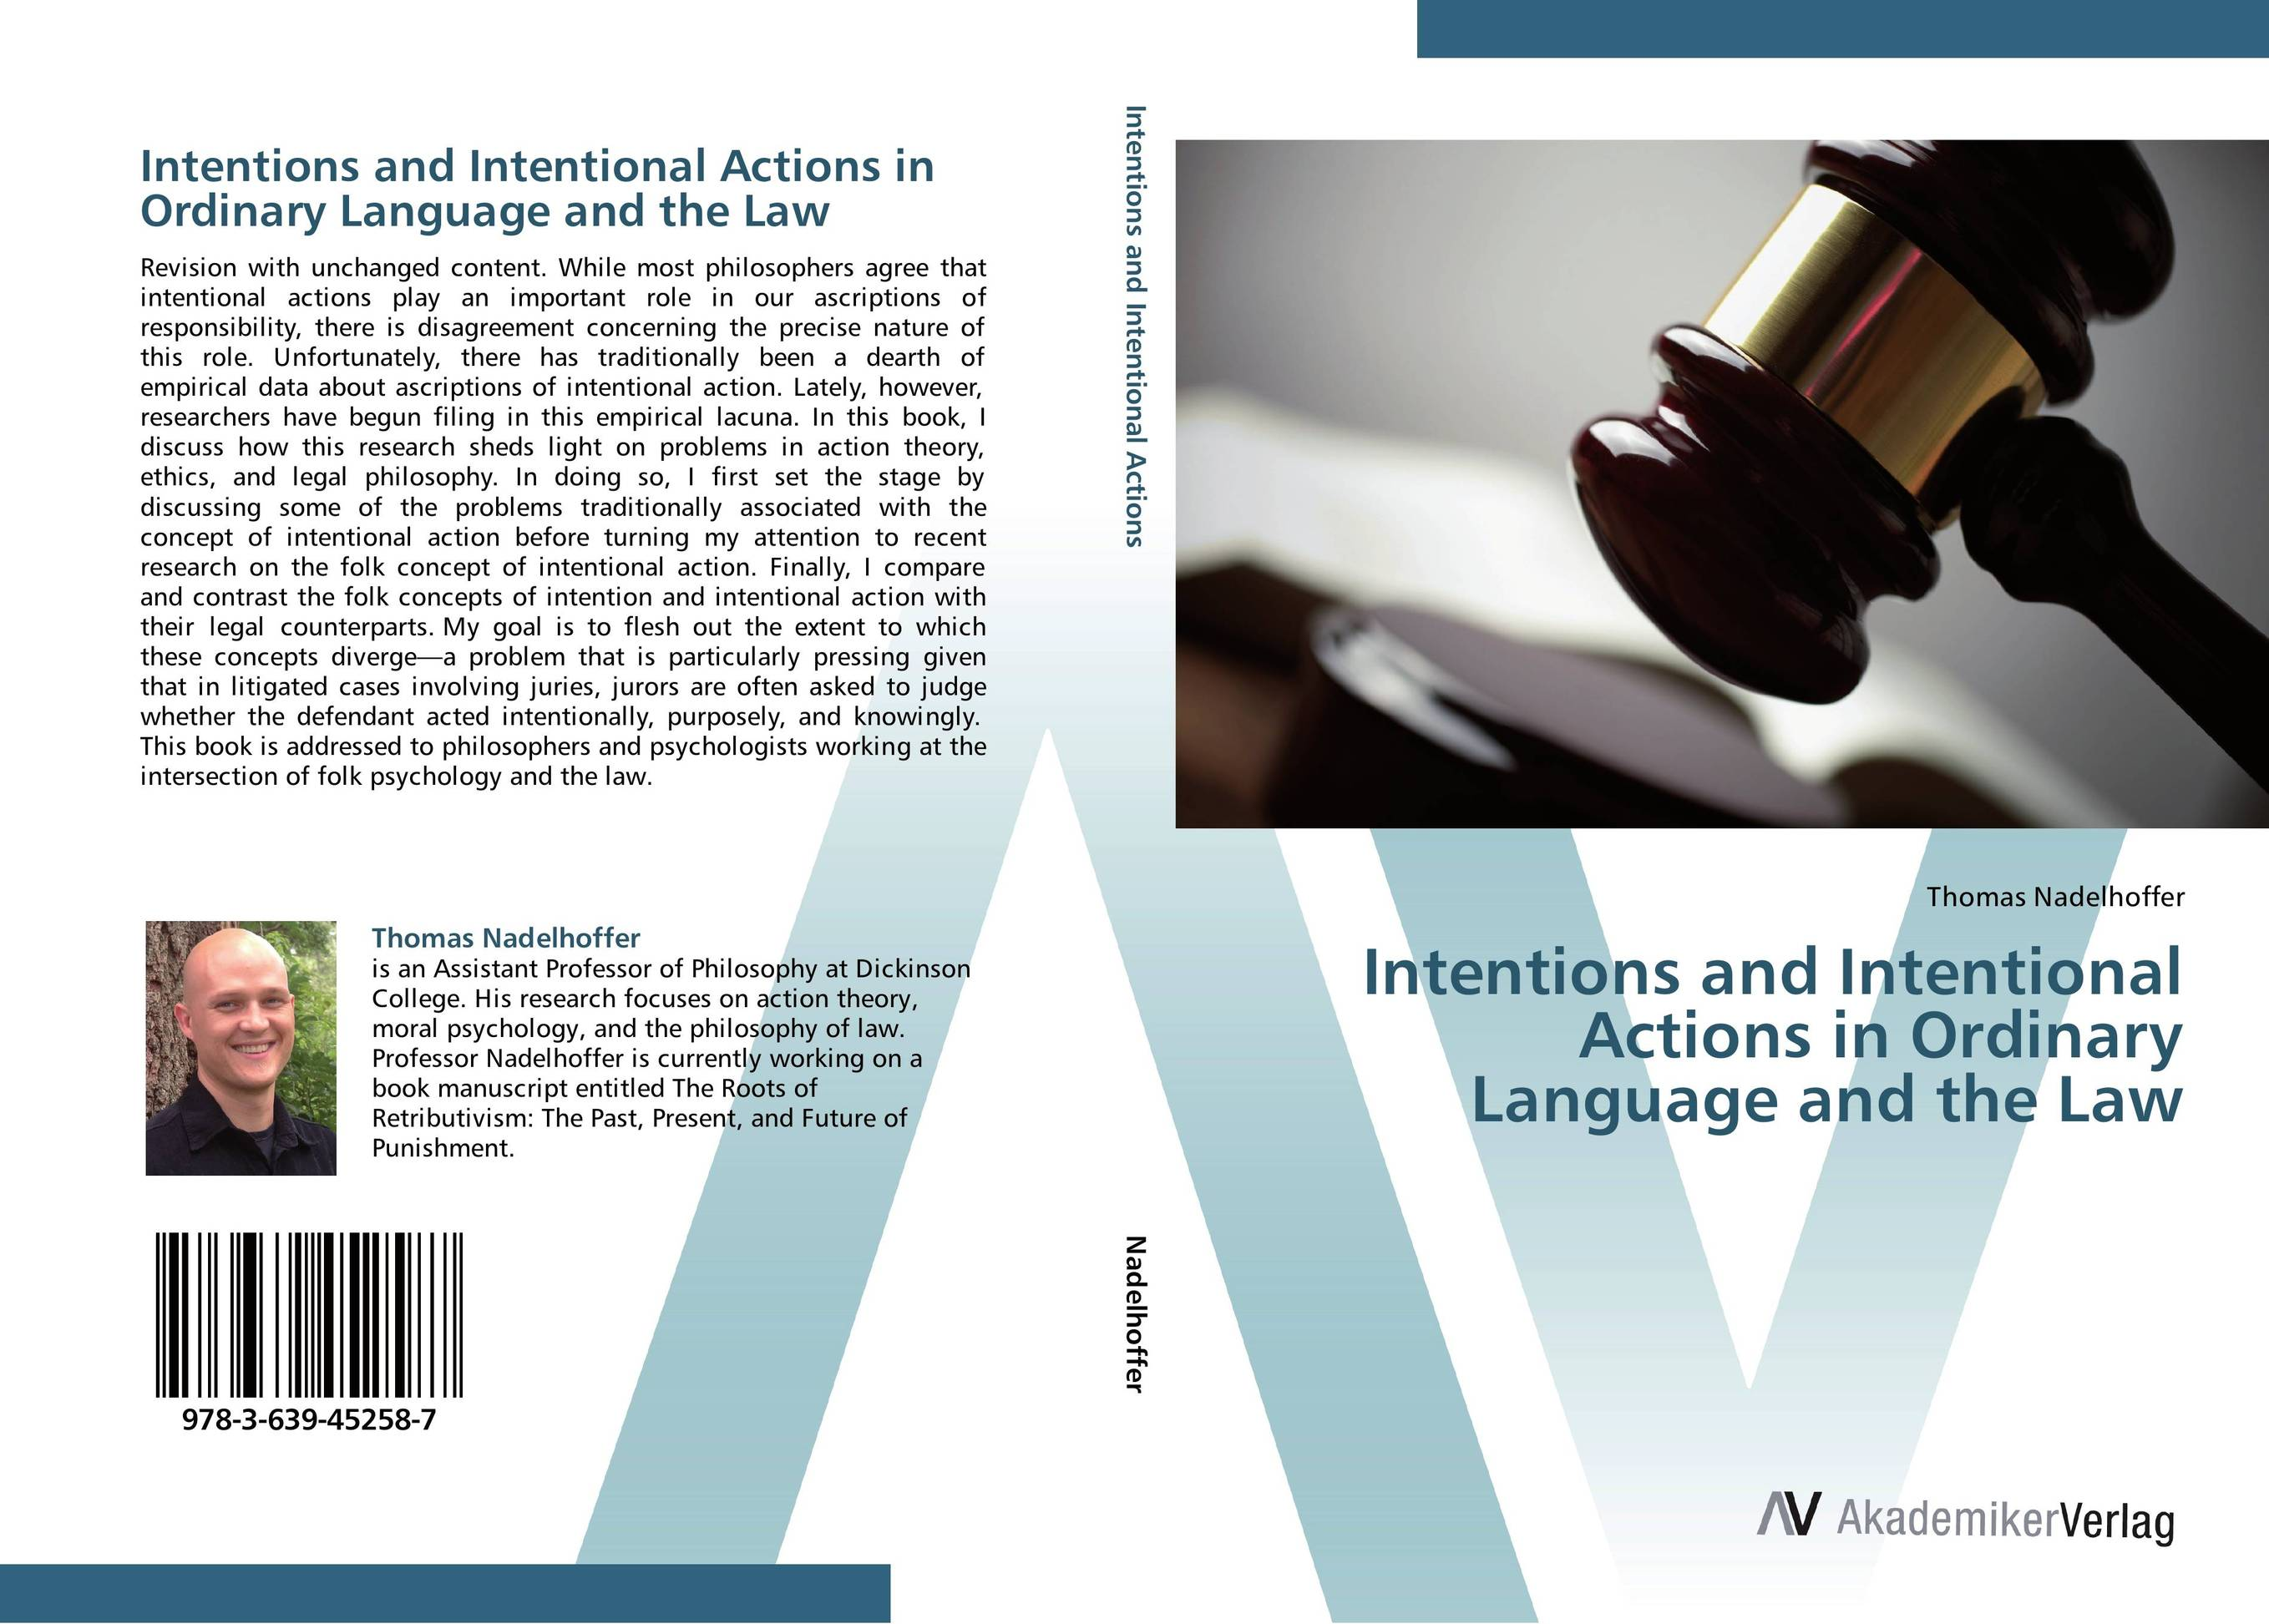 Intentions and Intentional Actions in Ordinary Language and the Law the role of legal feeling in the criminal legislation